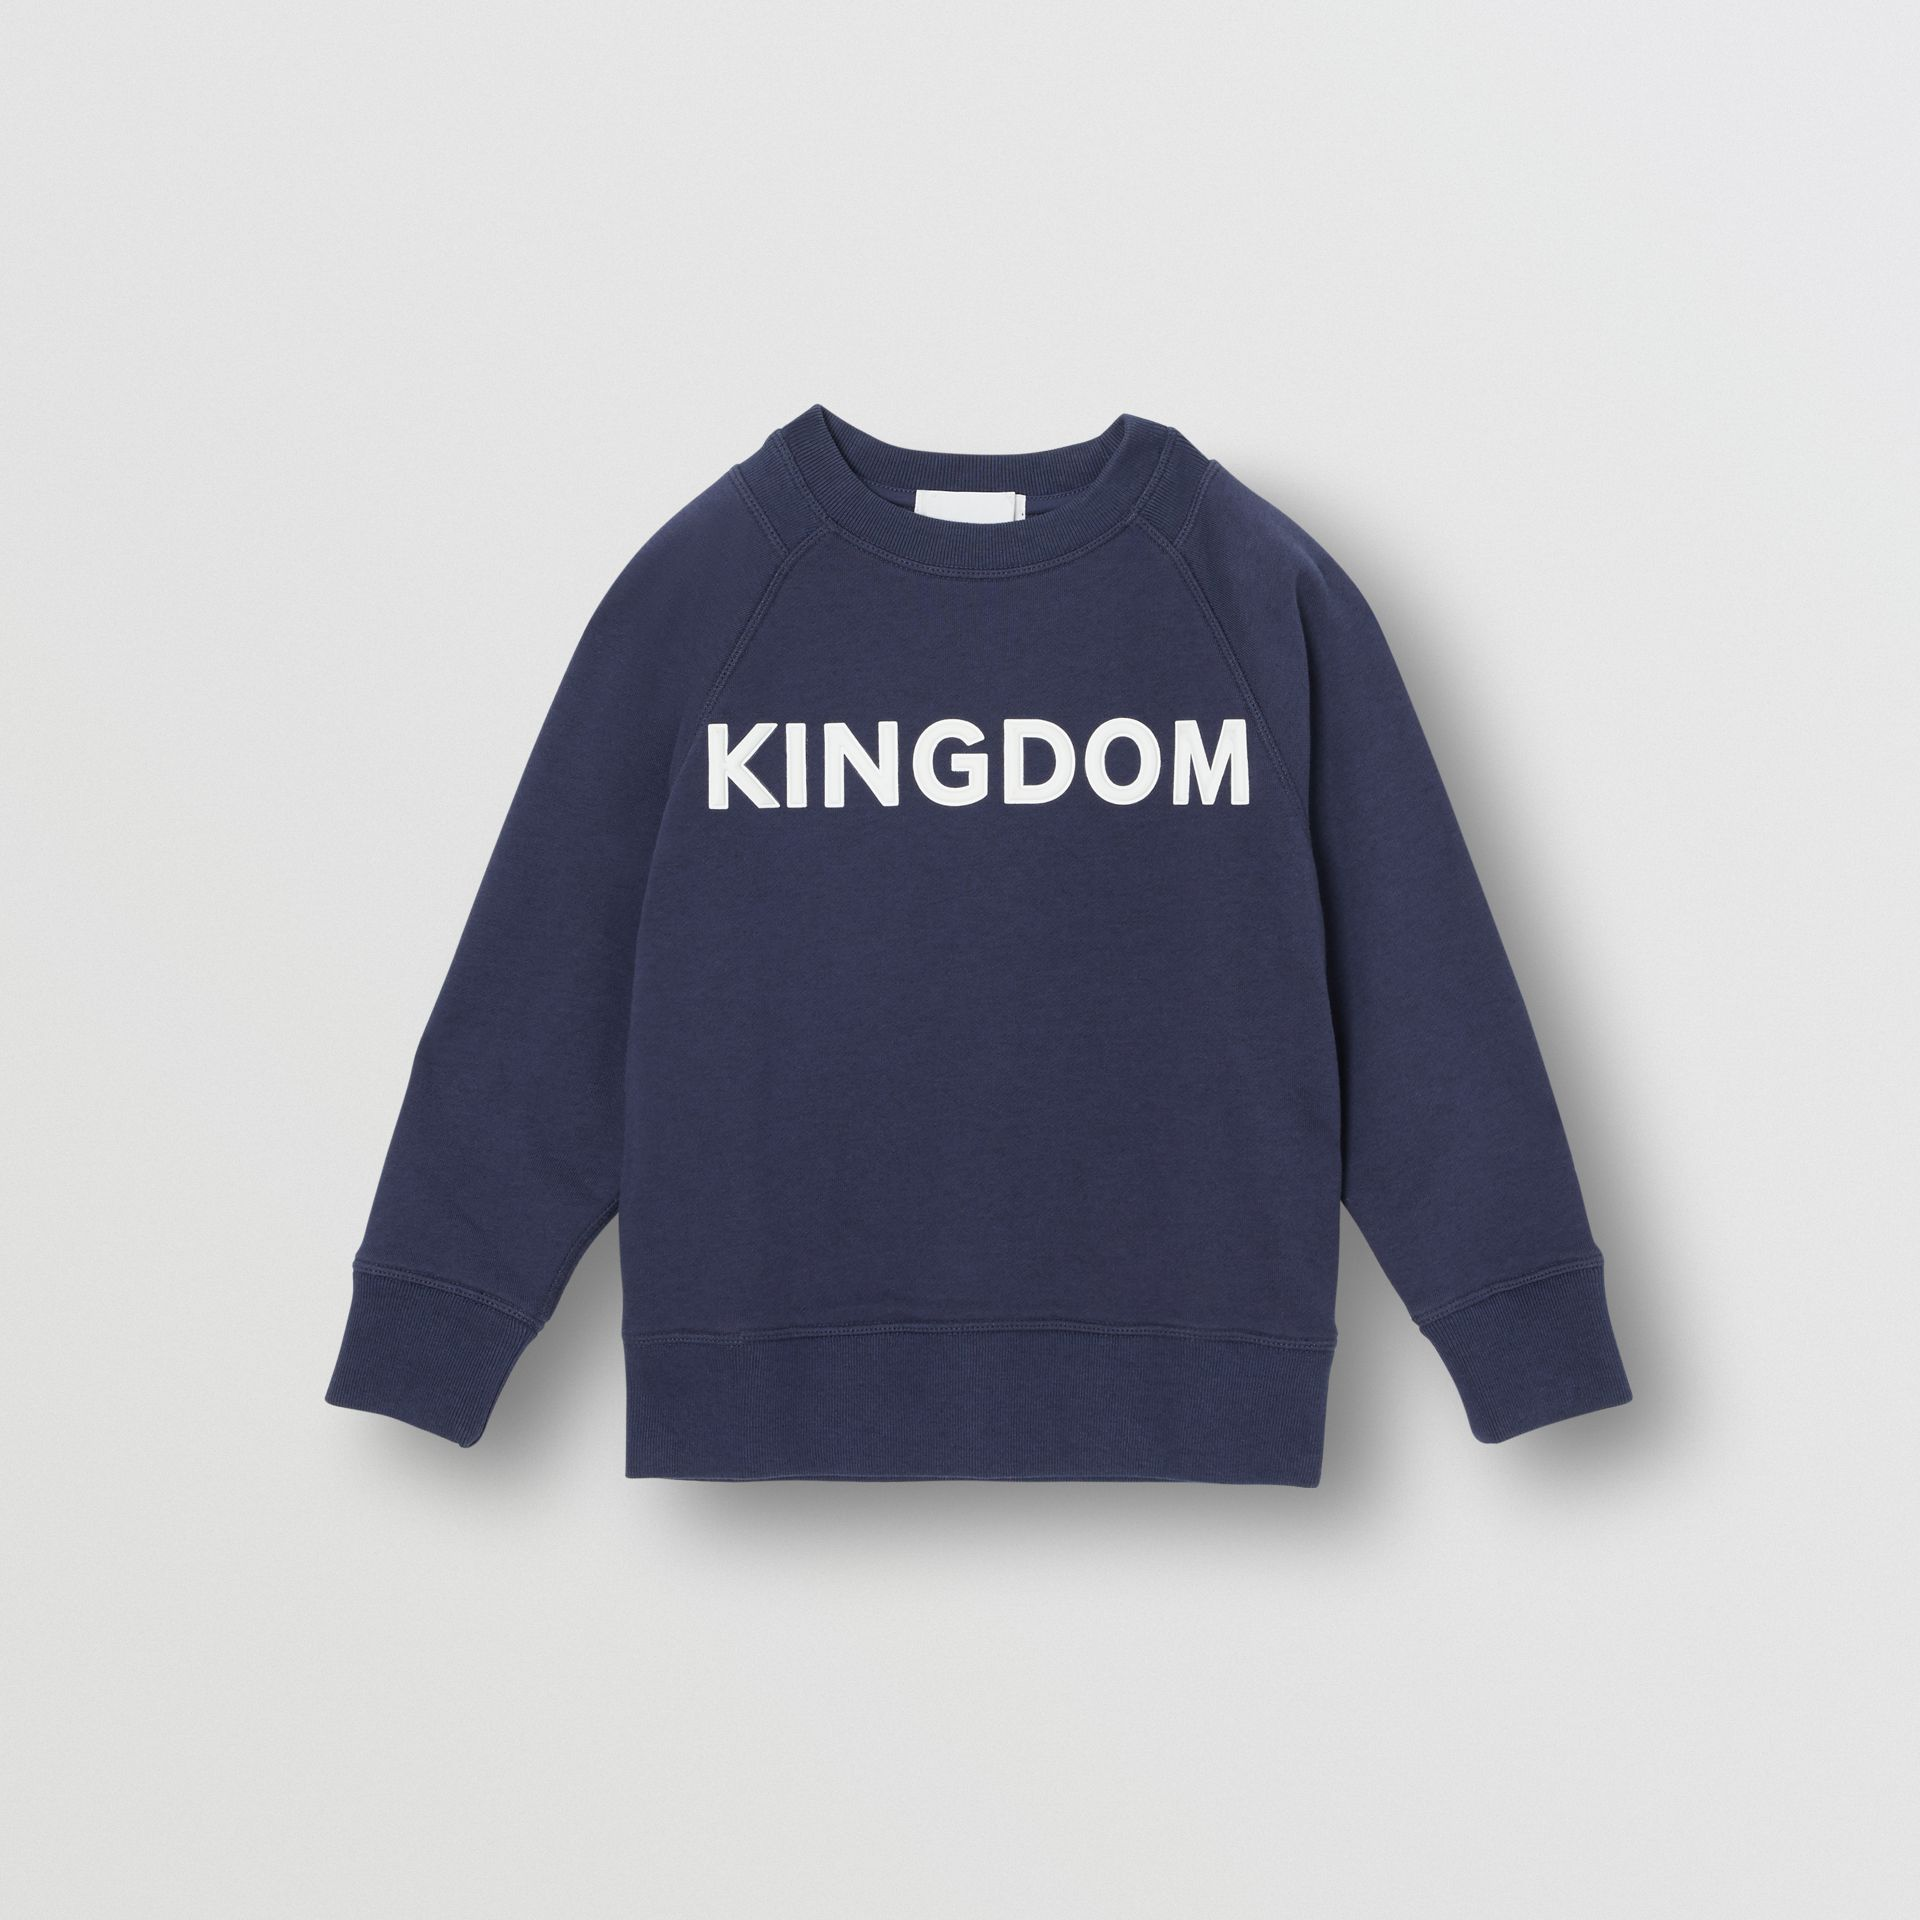 Kingdom Motif Cotton Sweatshirt in Slate Blue Melange | Burberry - gallery image 0